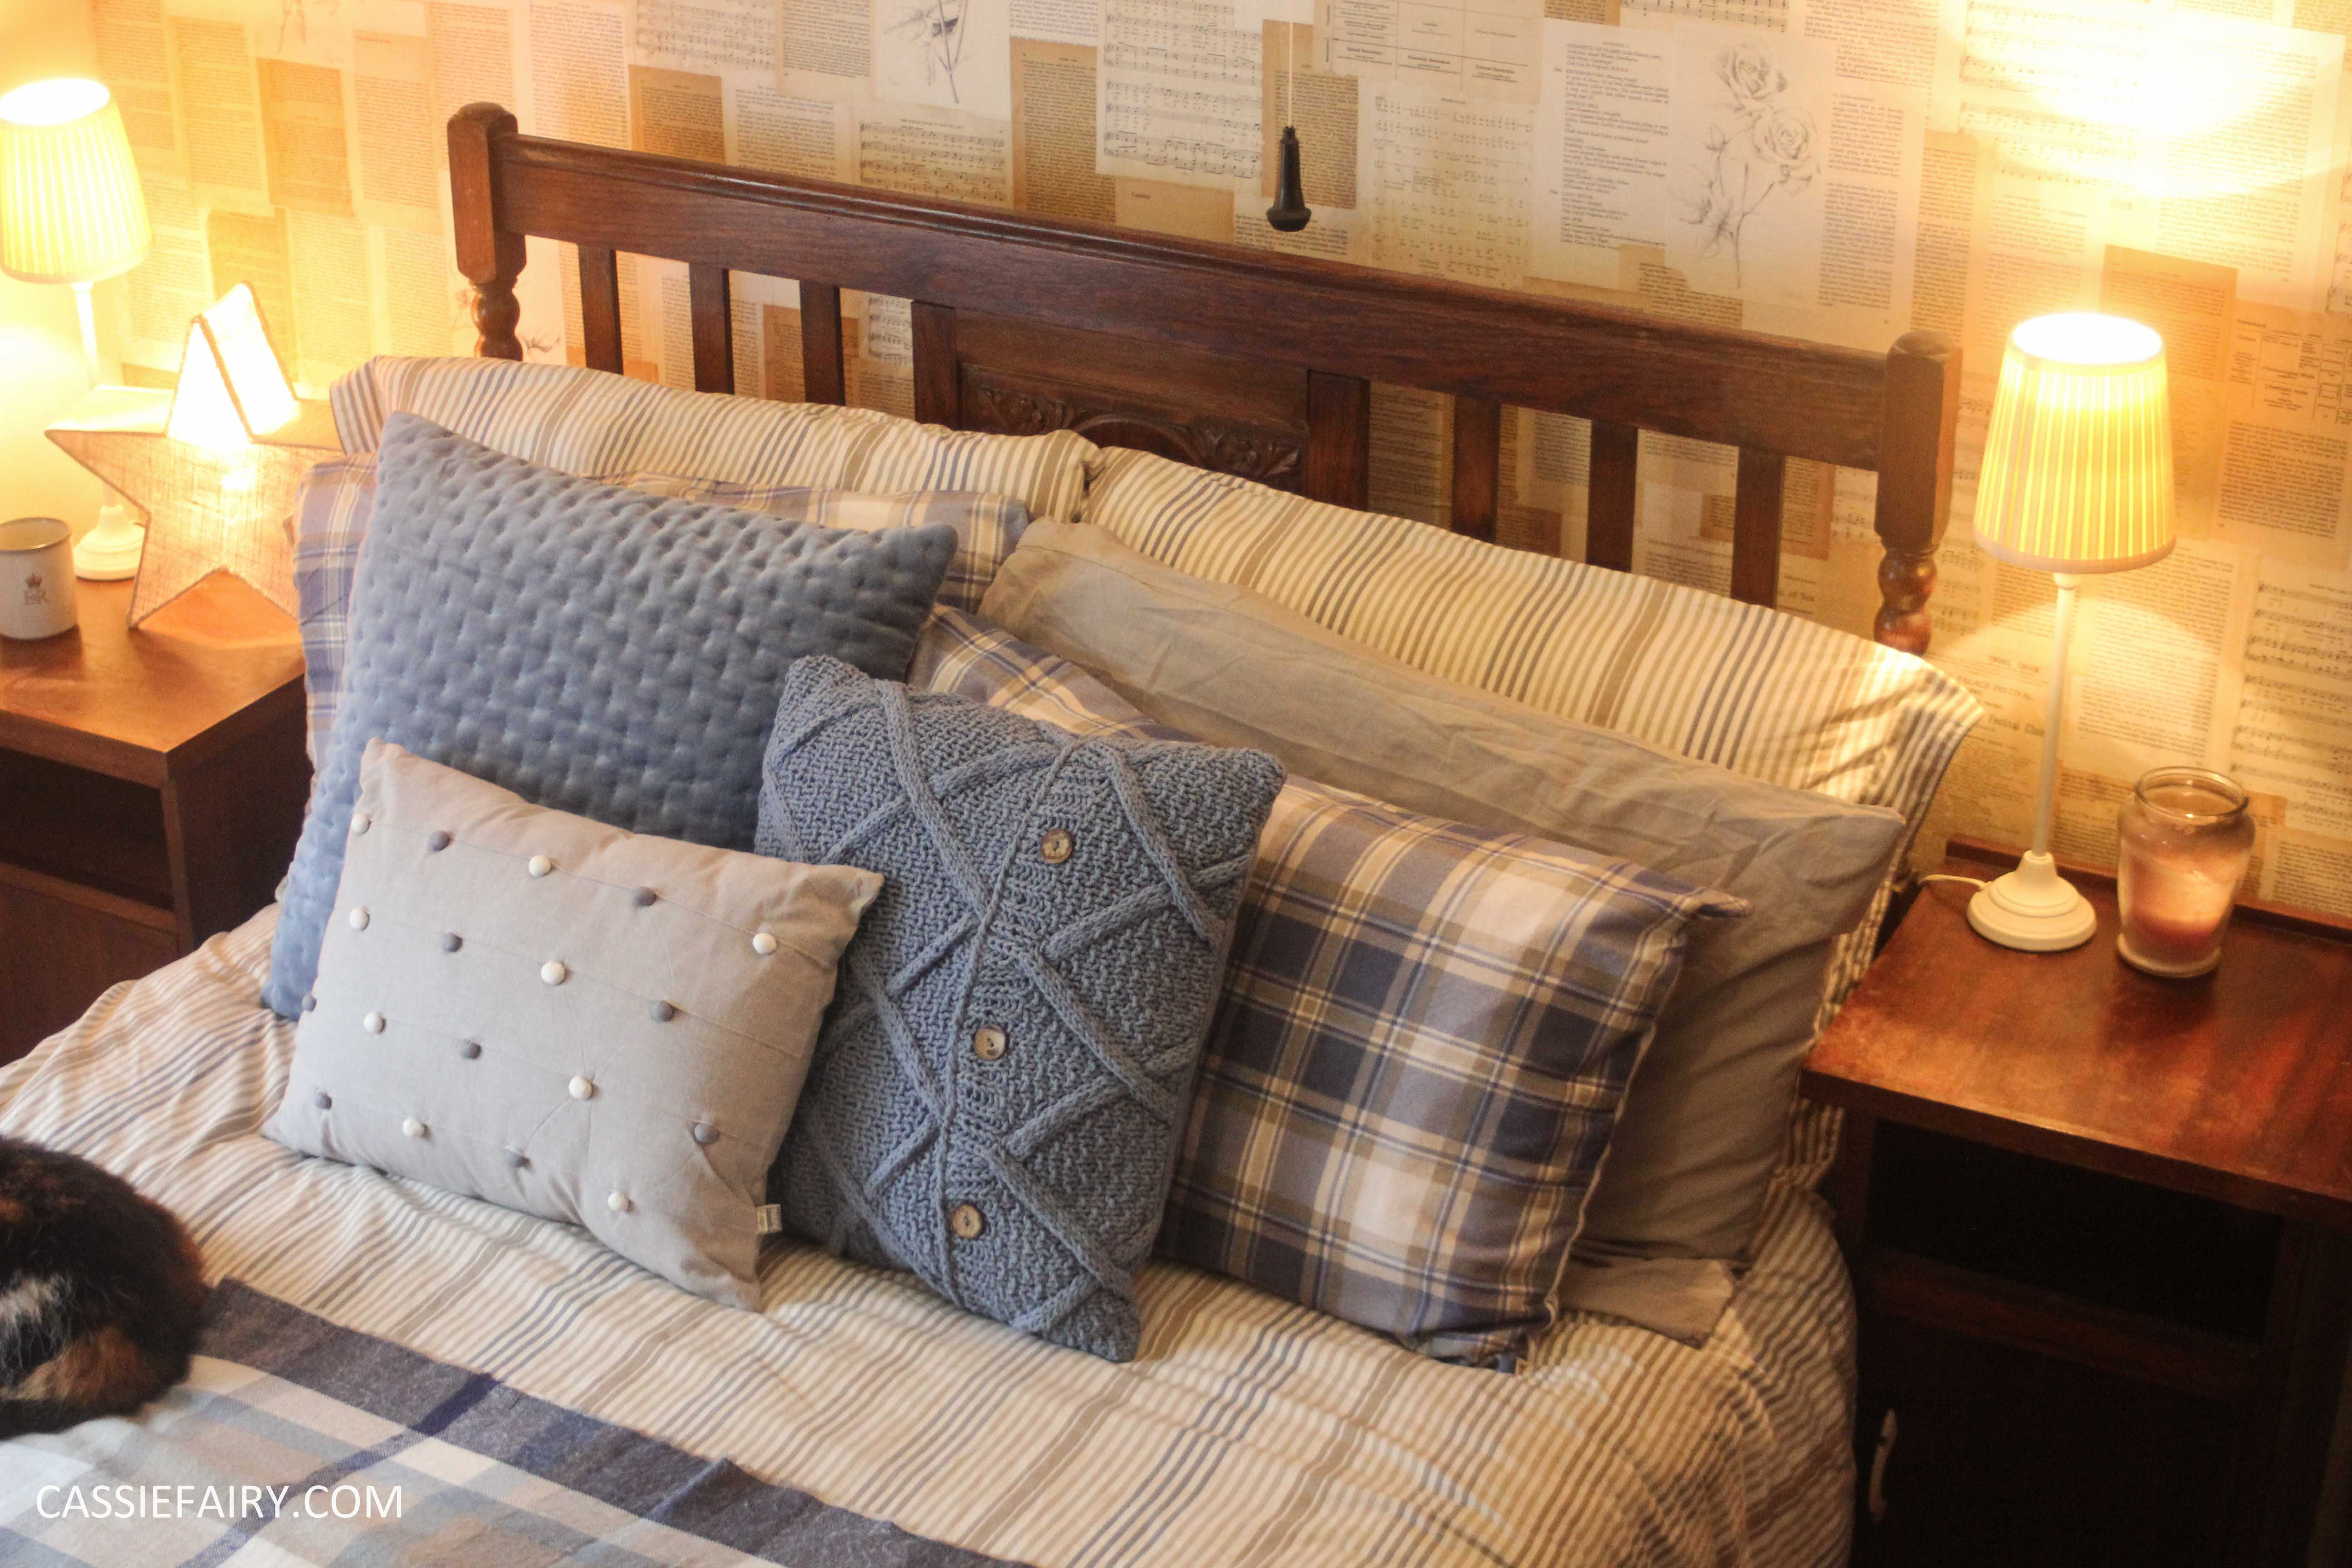 The solution is low cost making use of soft furnishings you already have at home and creates a snuggly bed that you wont want to leave all winter